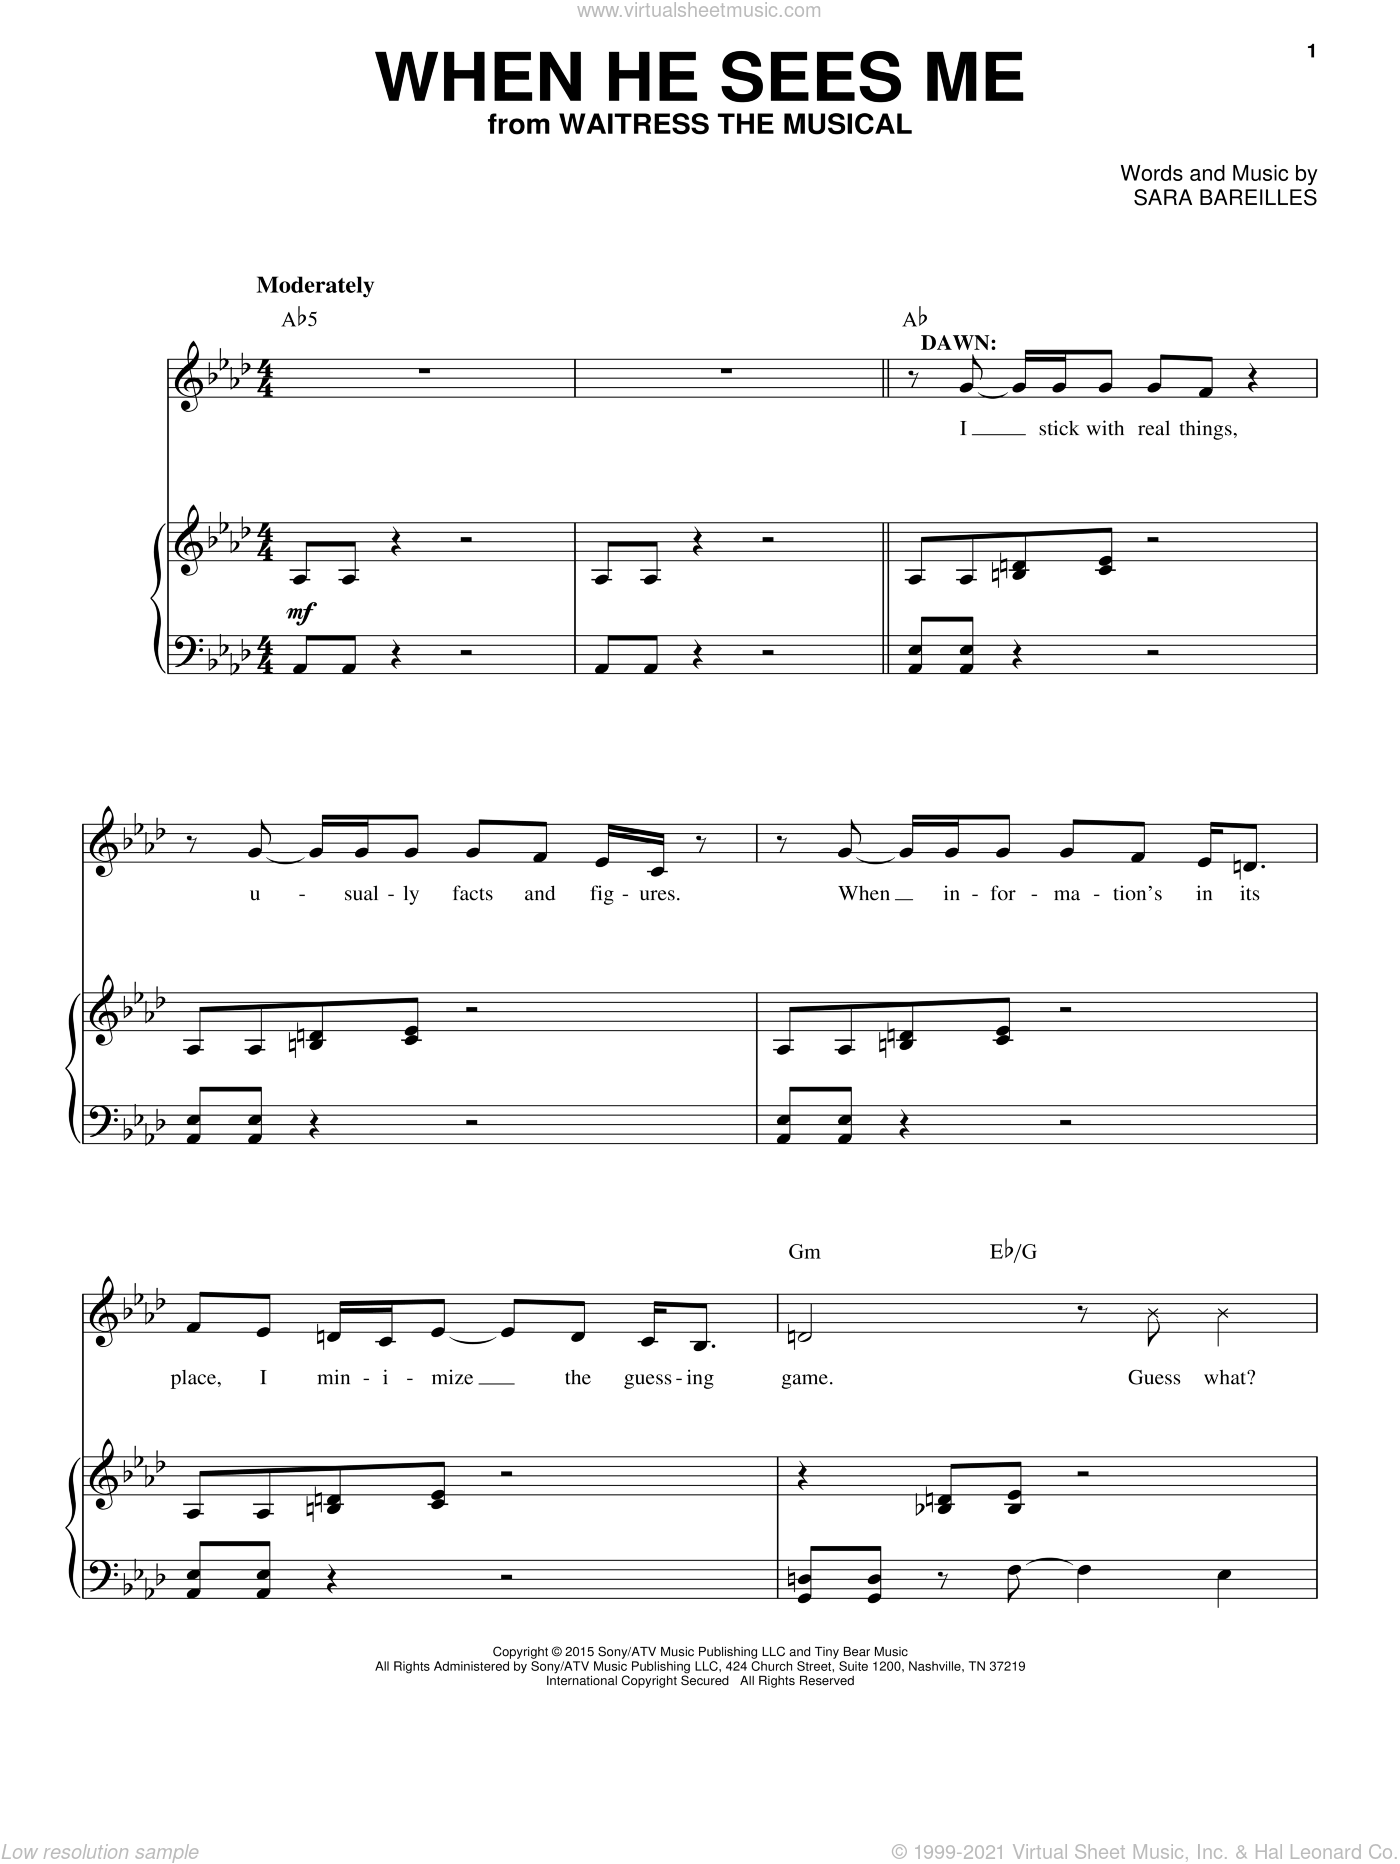 When He Sees Me (from Waitress The Musical) sheet music for voice and piano by Sara Bareilles, intermediate skill level